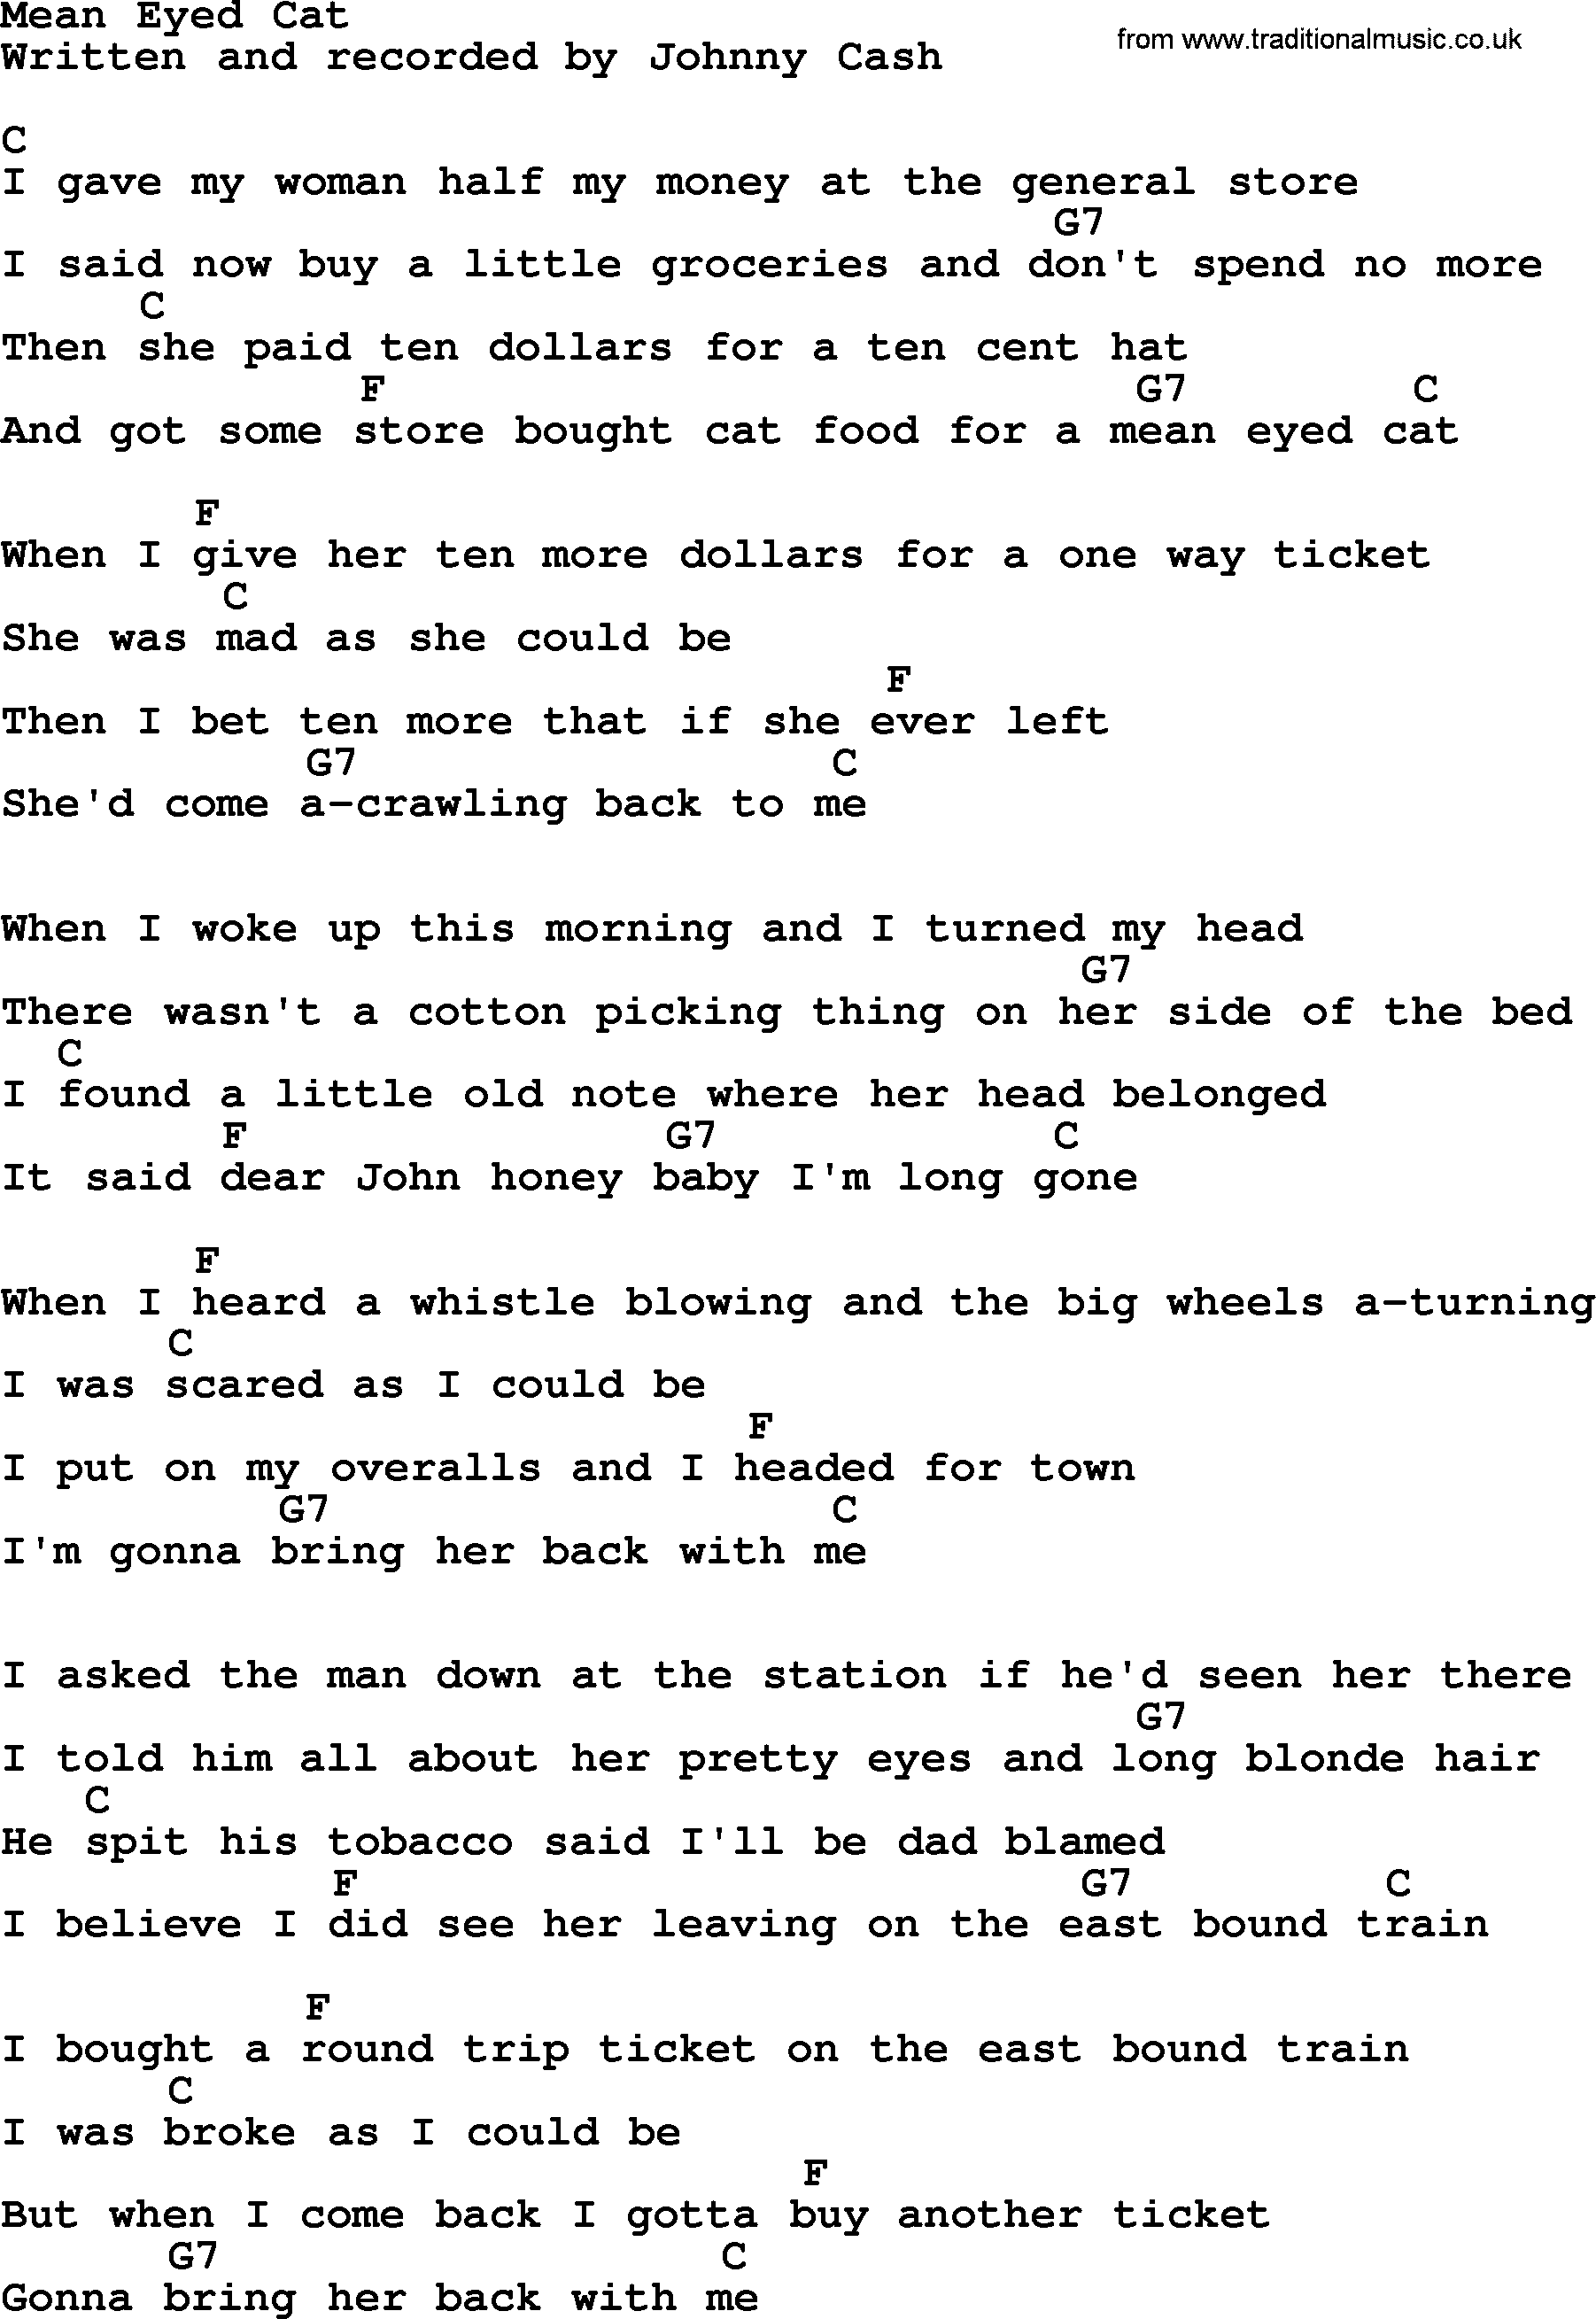 Mean Eyed Cat Lyrics